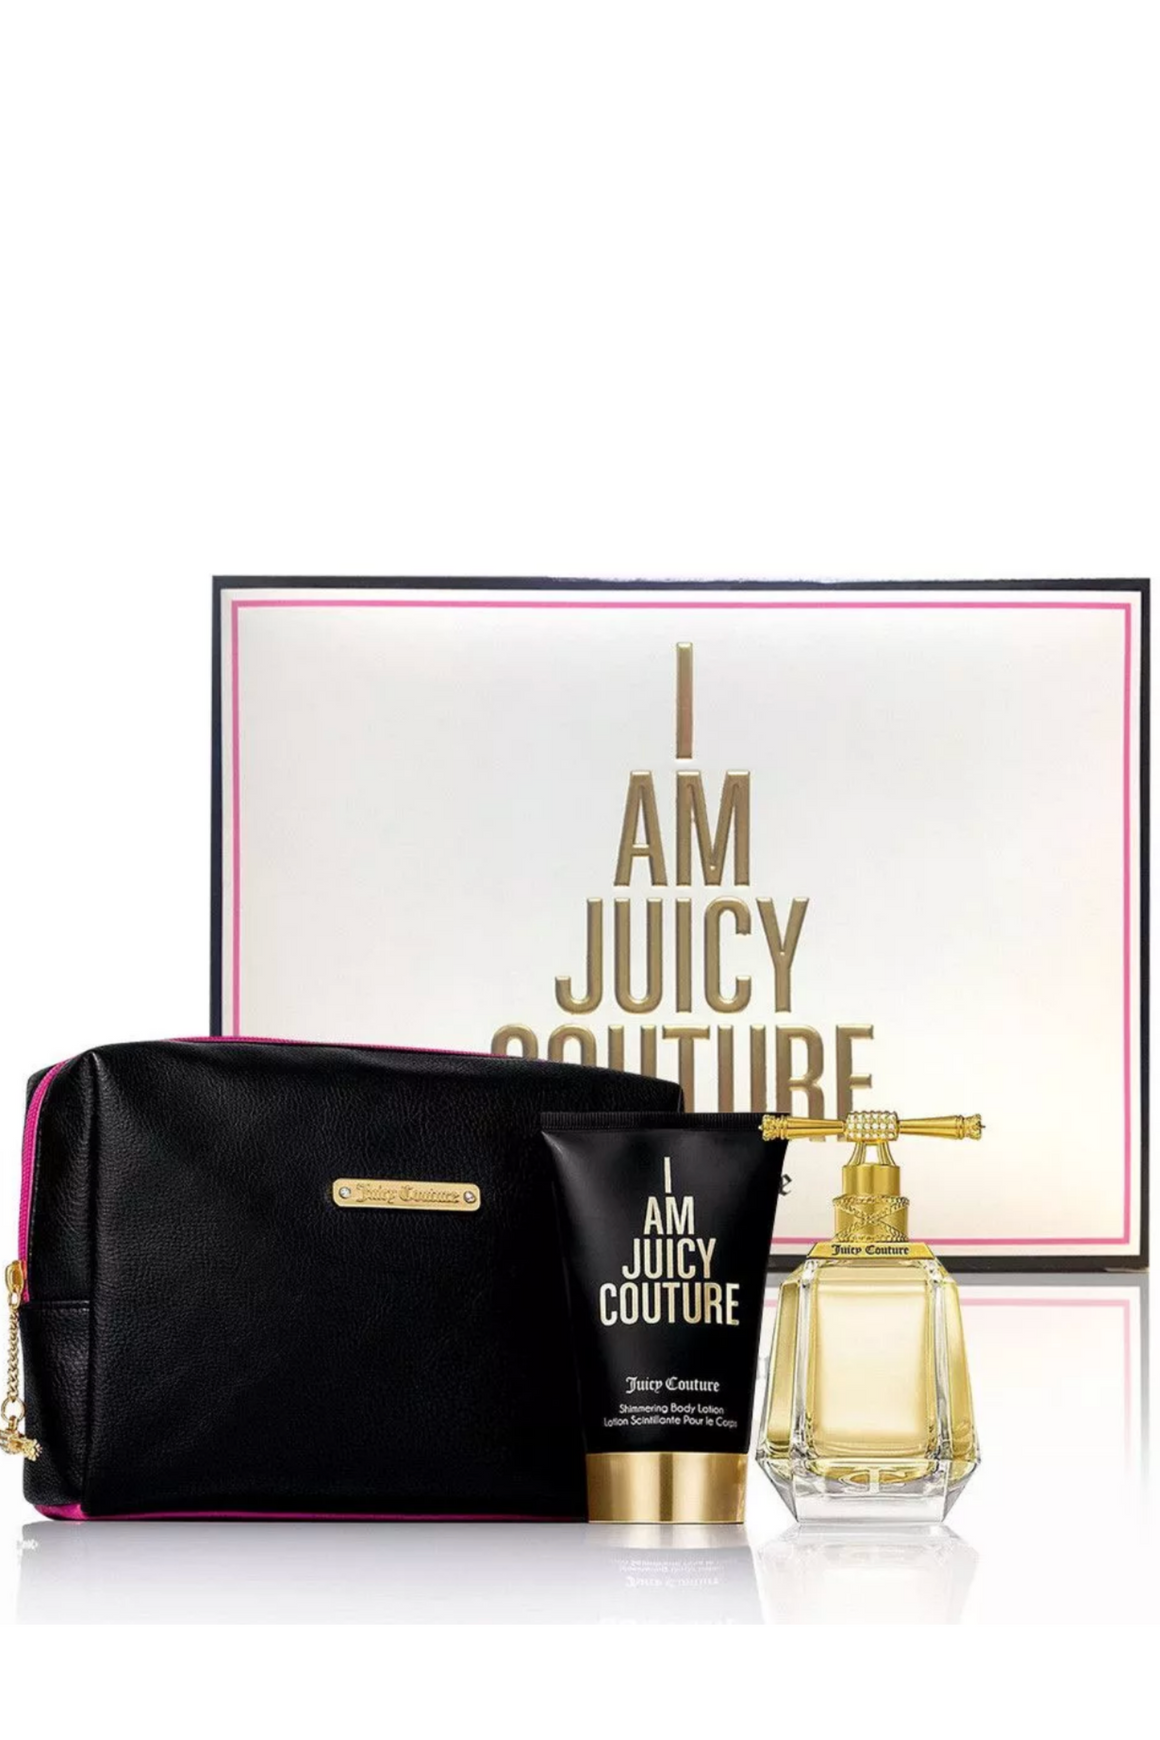 Juicy Couture | I Am Juicy Couture EDP | 2 pc Travel Set